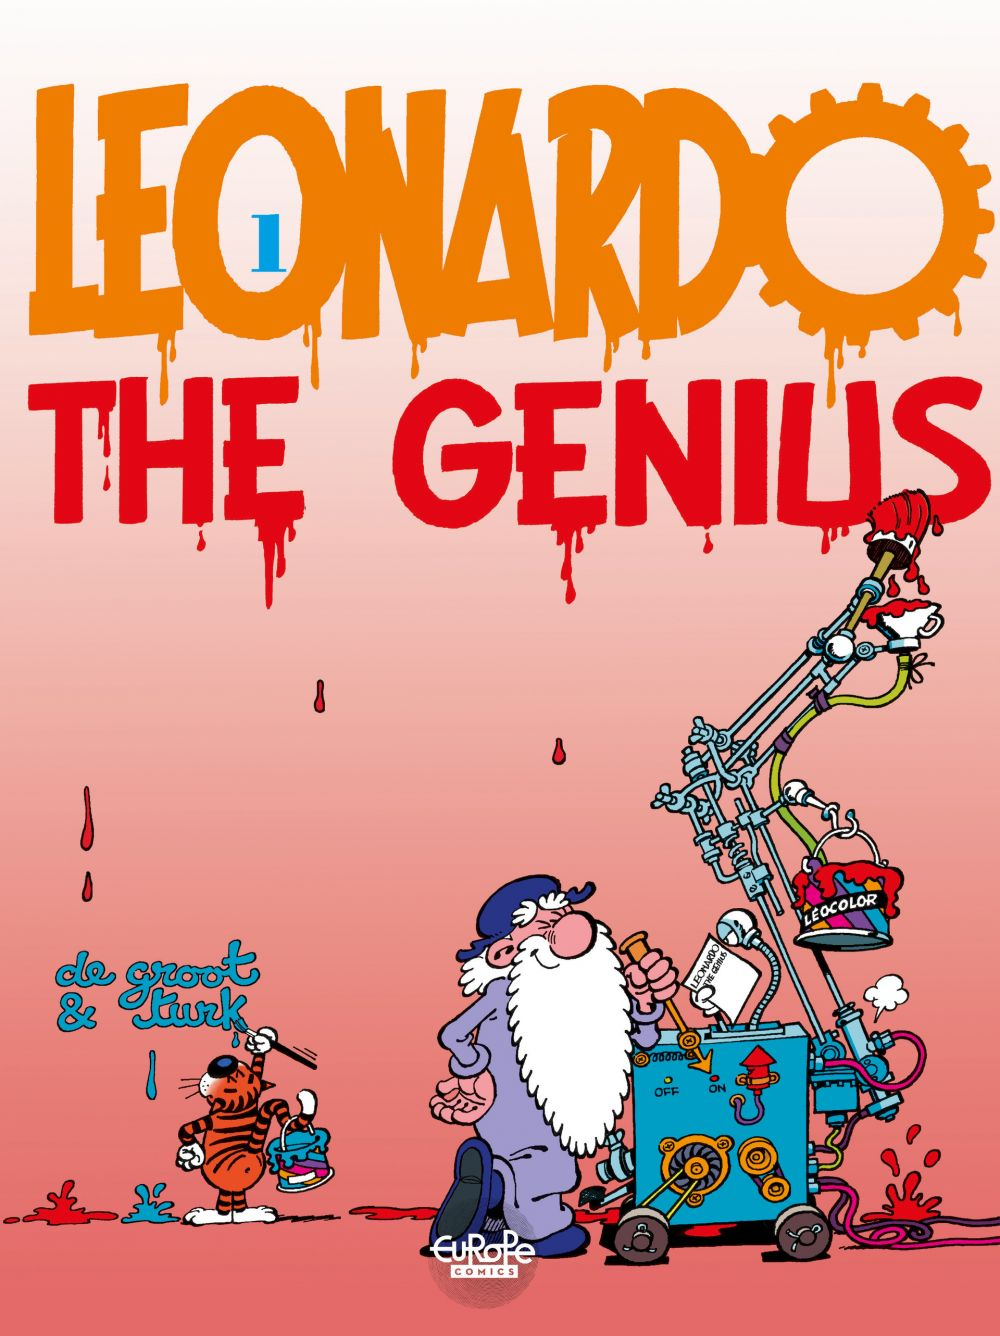 Léonard - Tome 1 - 1. Leonardo the genius